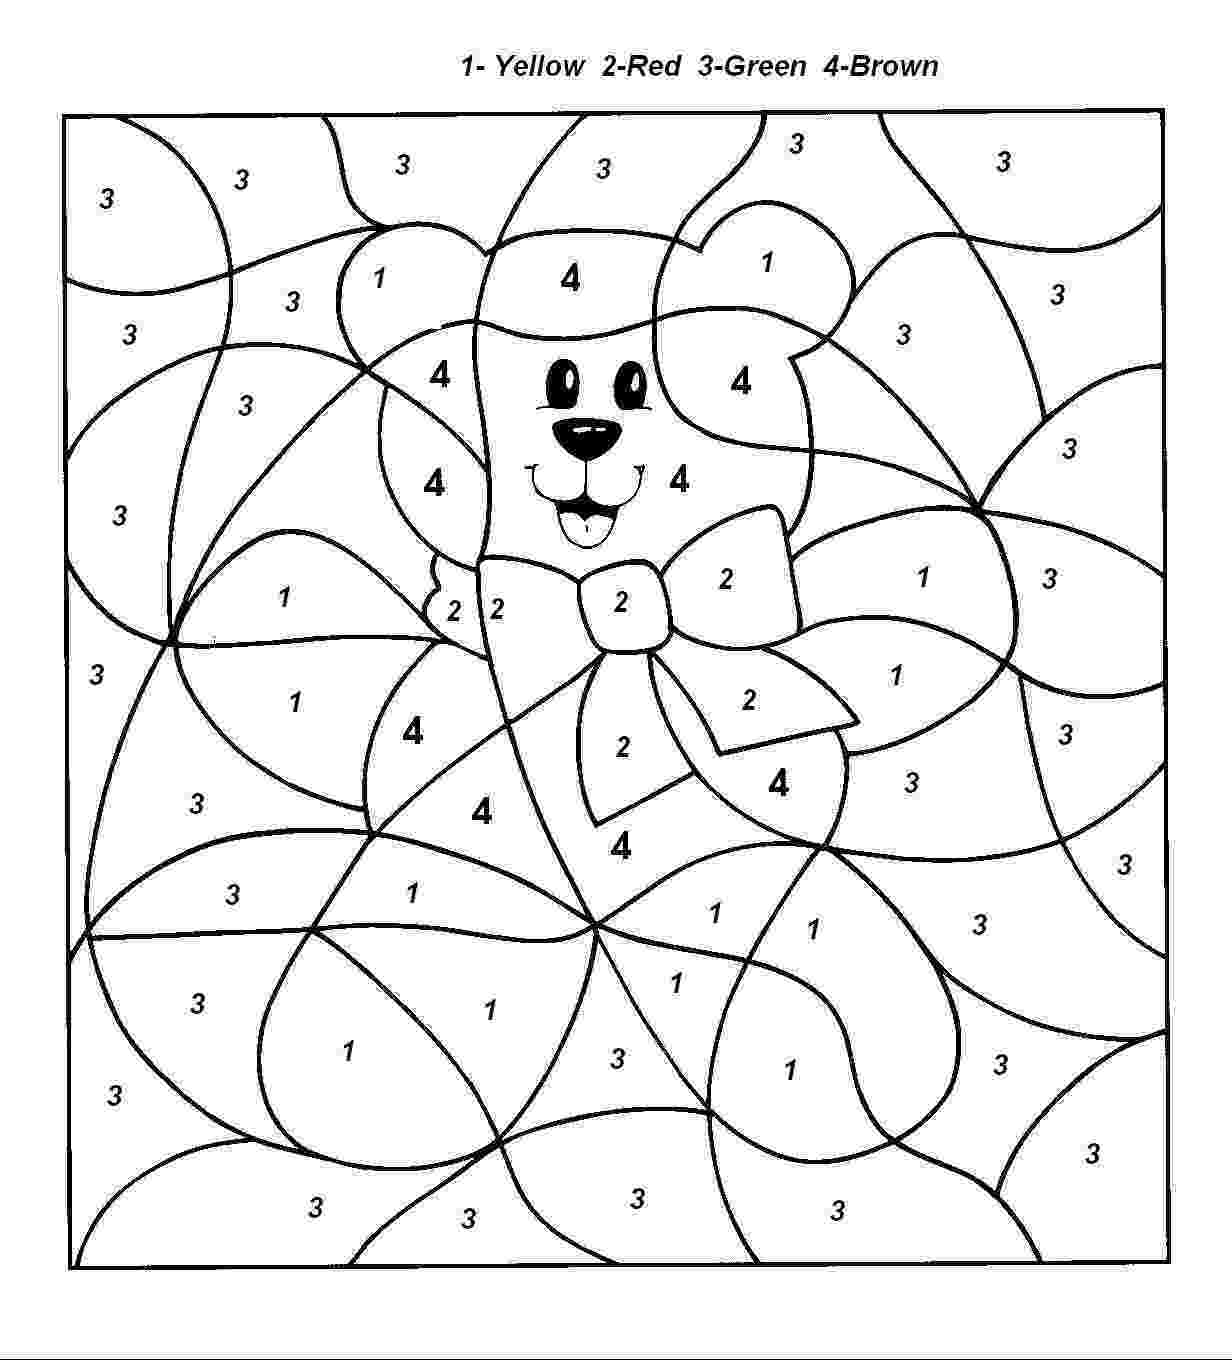 color by number printables color by number coloring pages to download and print for free printables color number by